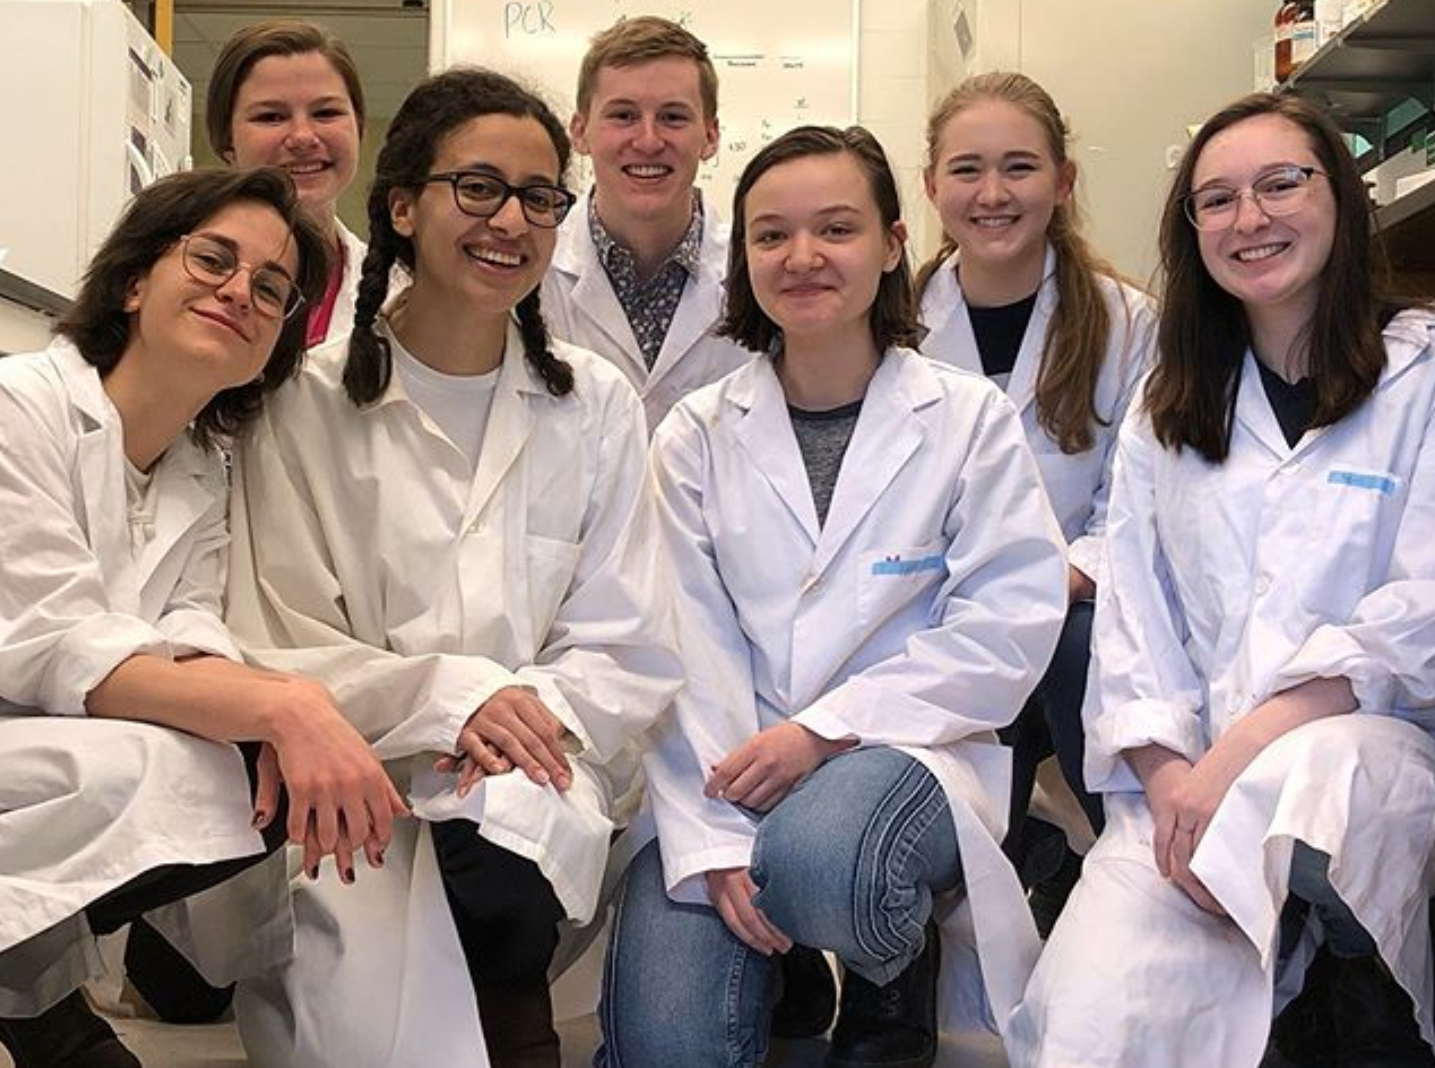 iGEM lab team in lab coats